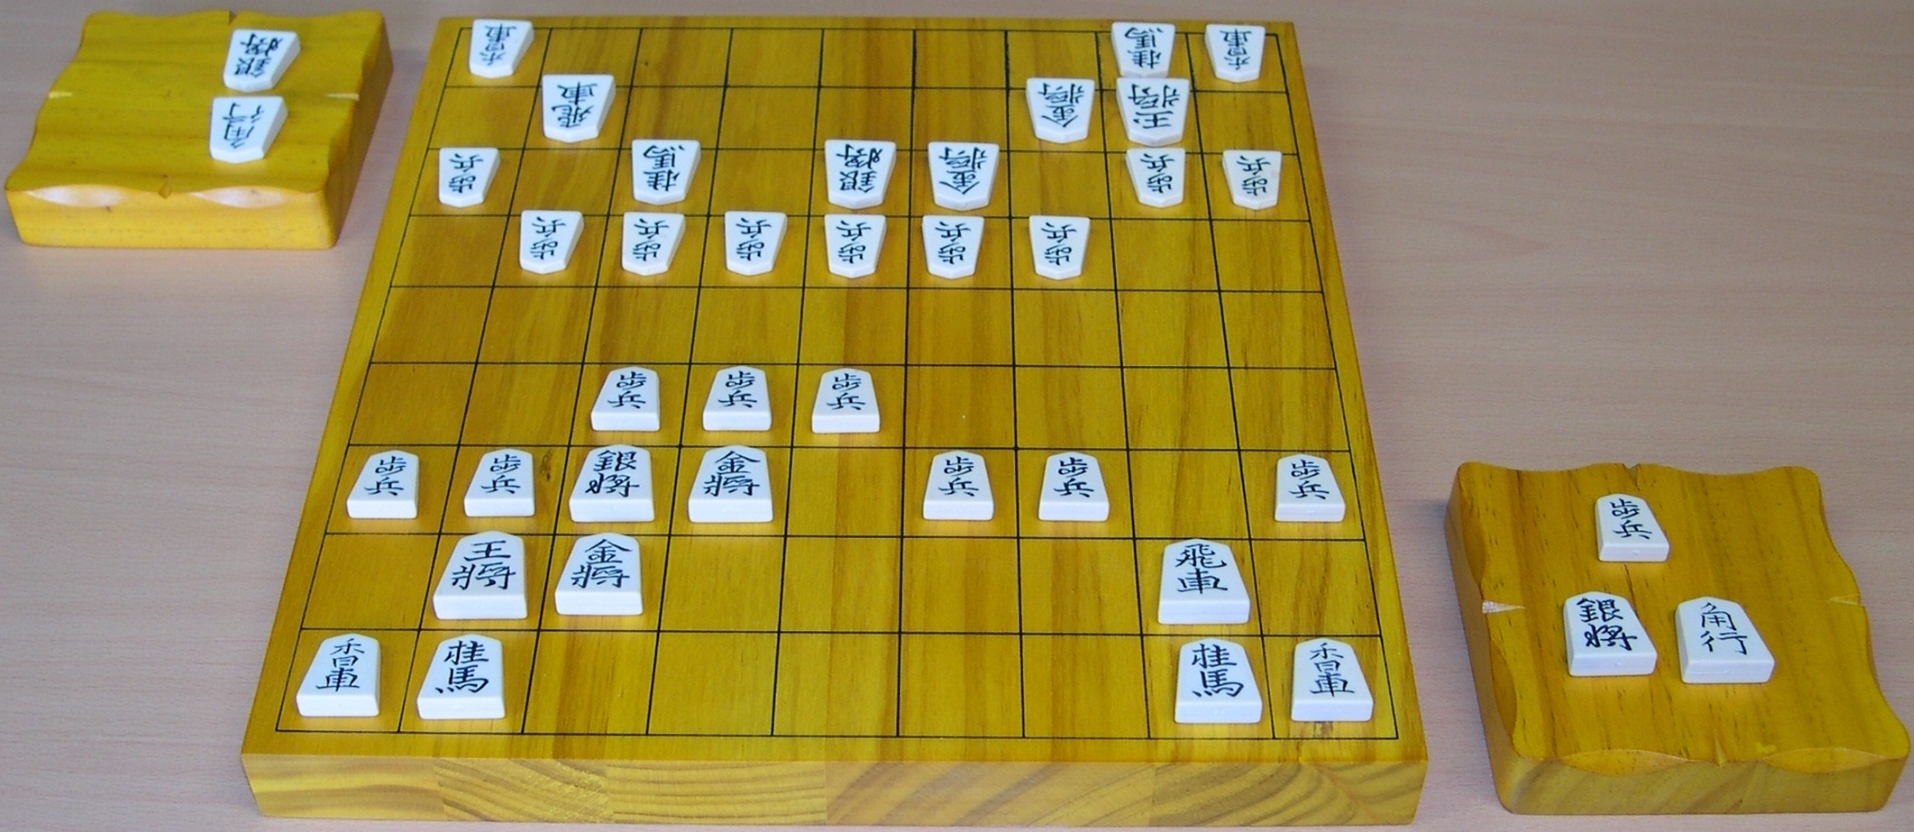 Shogi Wikipedia The clone wars i thought the character seemed does gungi ever make an appearance, or get mentioned in the comic world? shogi wikipedia